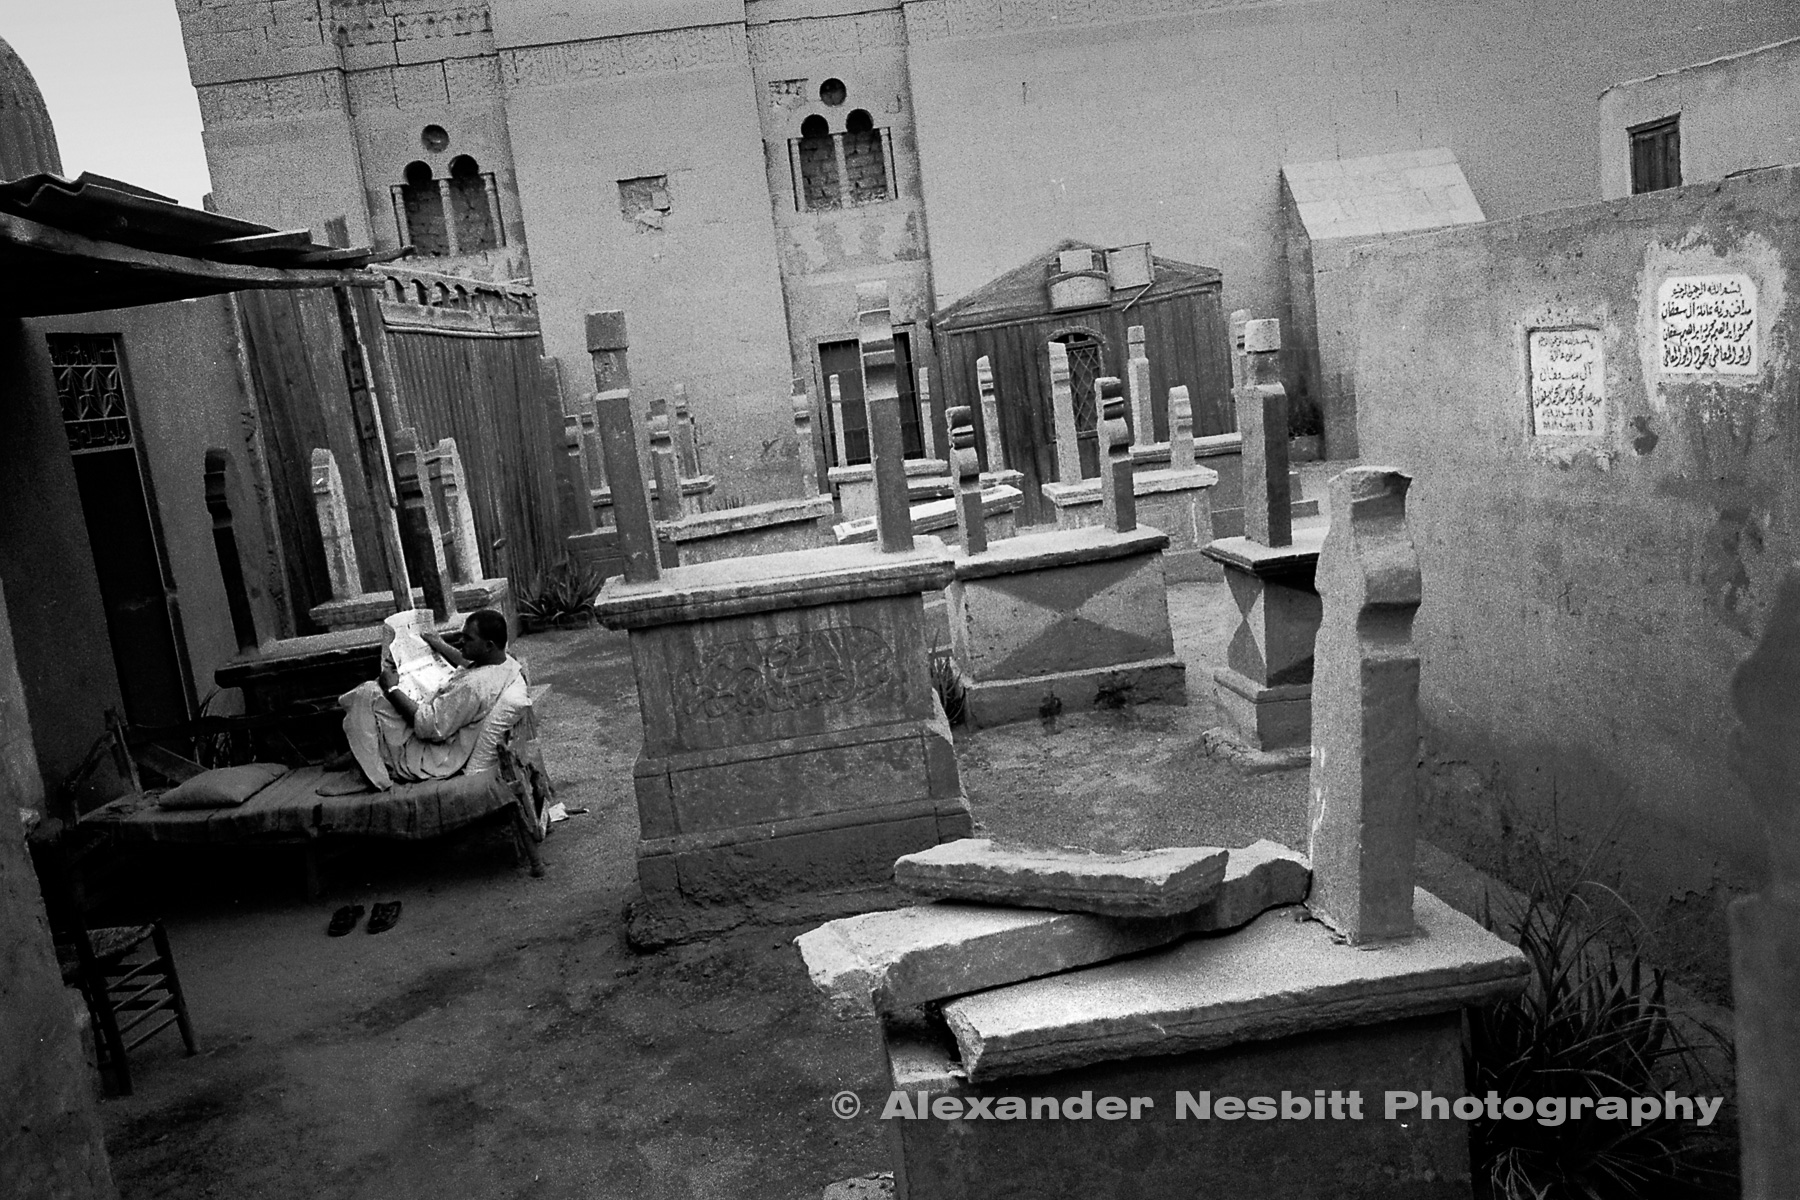 City of the Dead, Cairo  - A tomb guardian reads the paper.  For the inhabitants of the cemetery daily live goes on among the the graves.